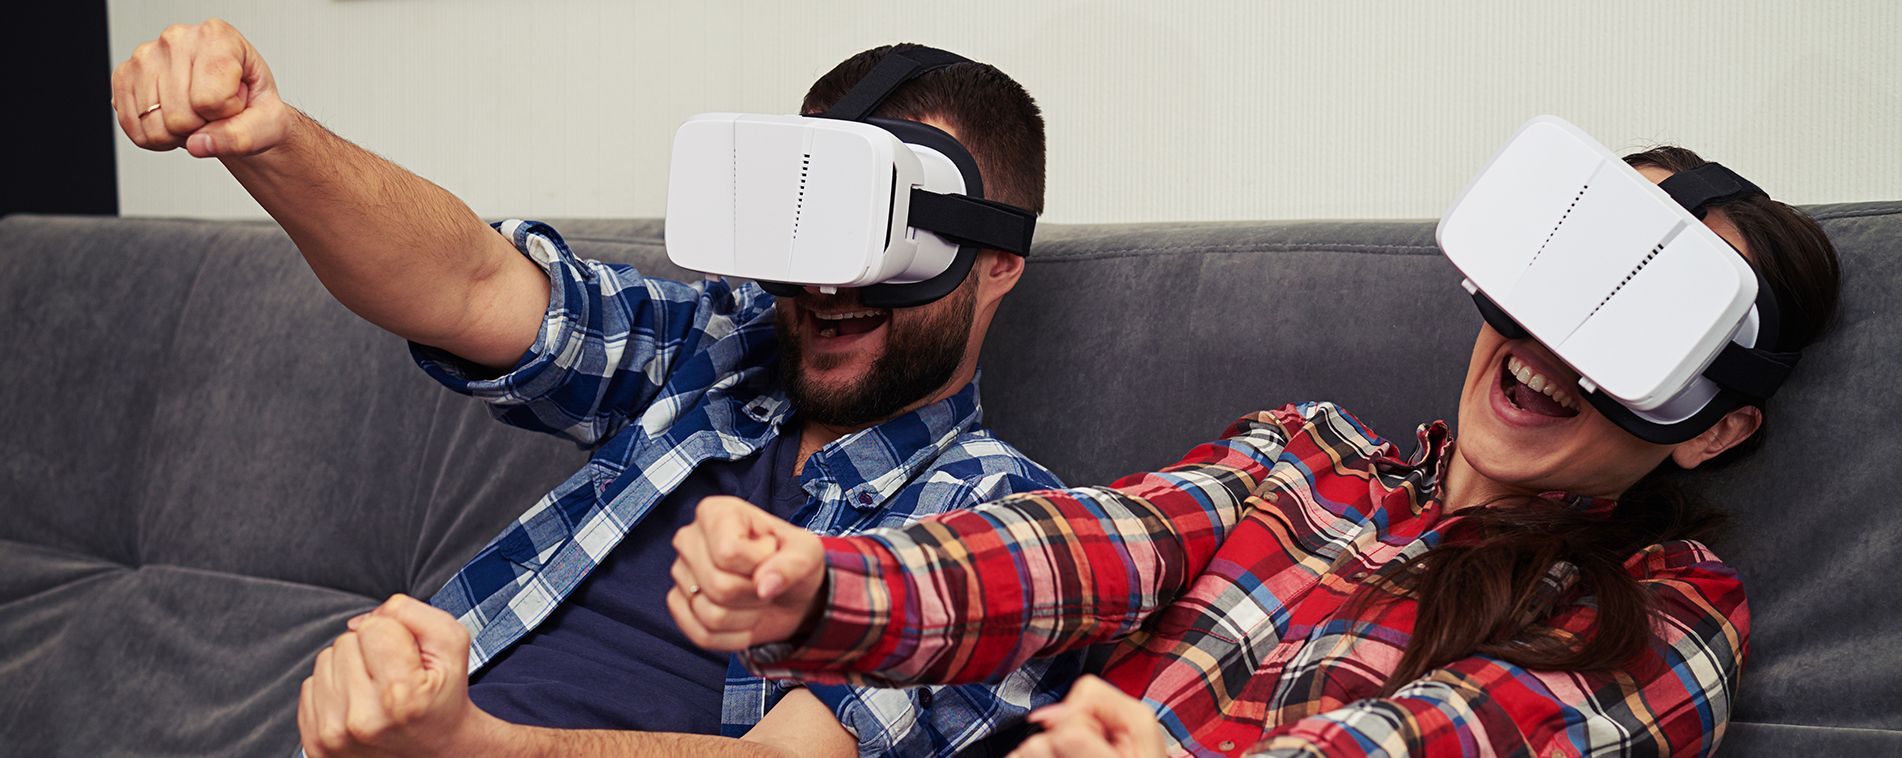 Virtual Reality is the Future of Advertising